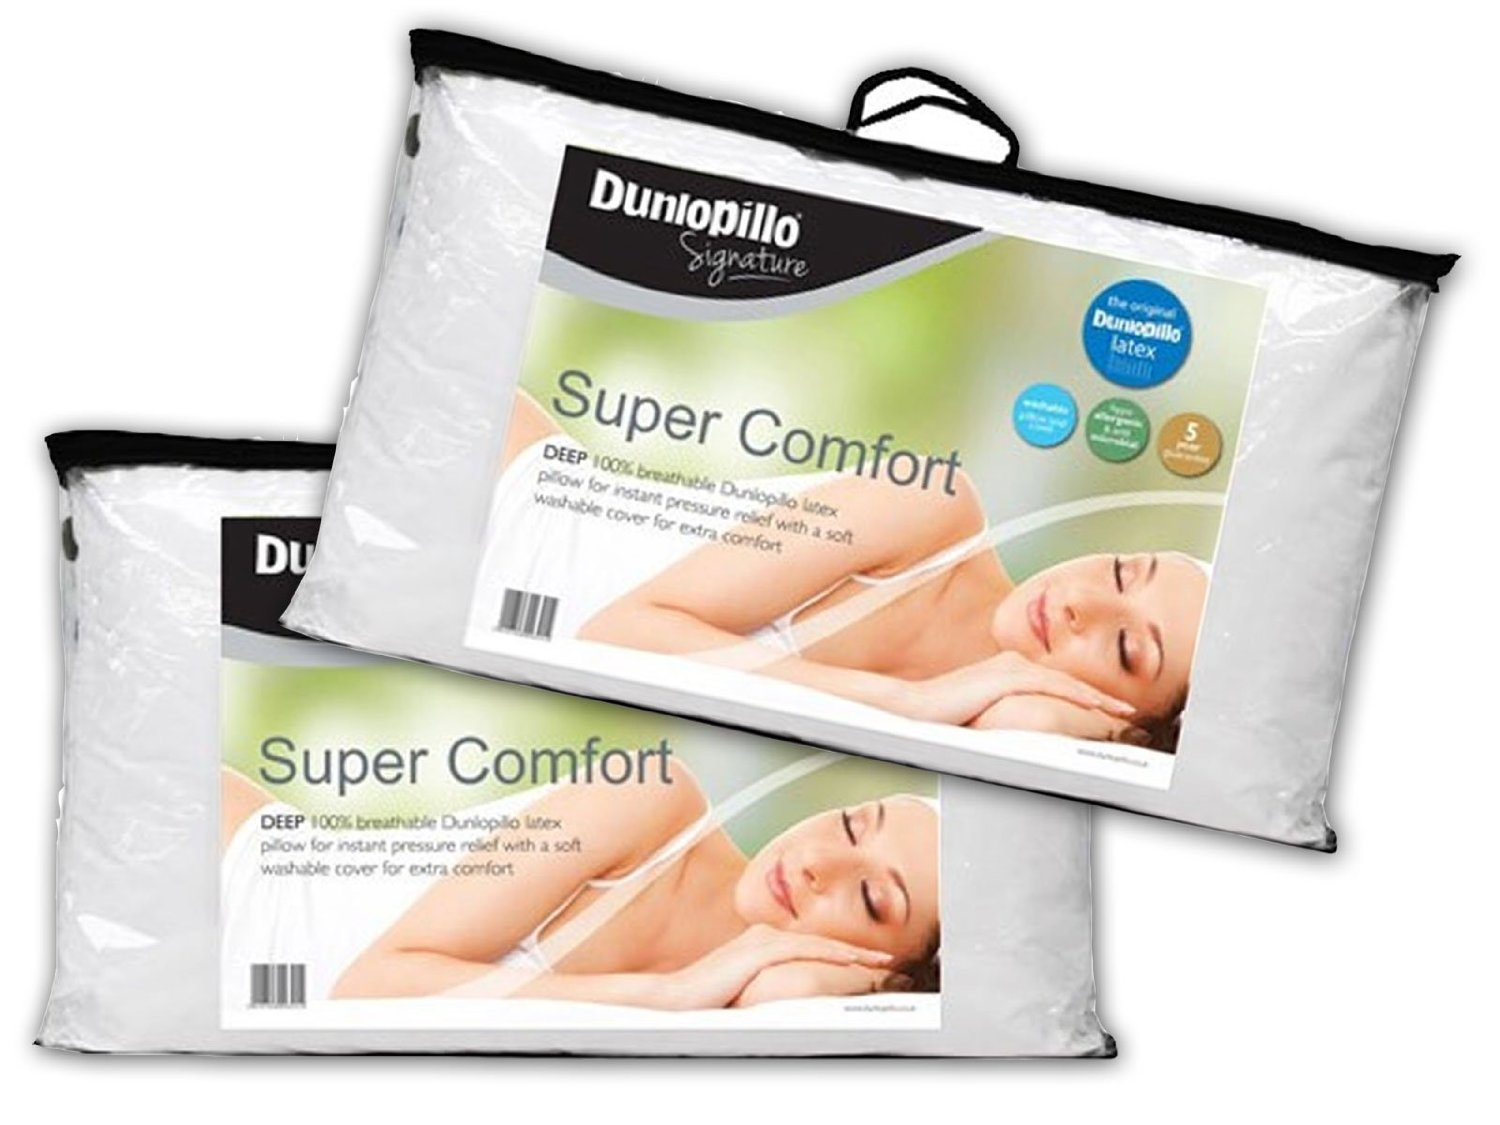 Dunlopillo hg3 1jl Latex Foam Pillow